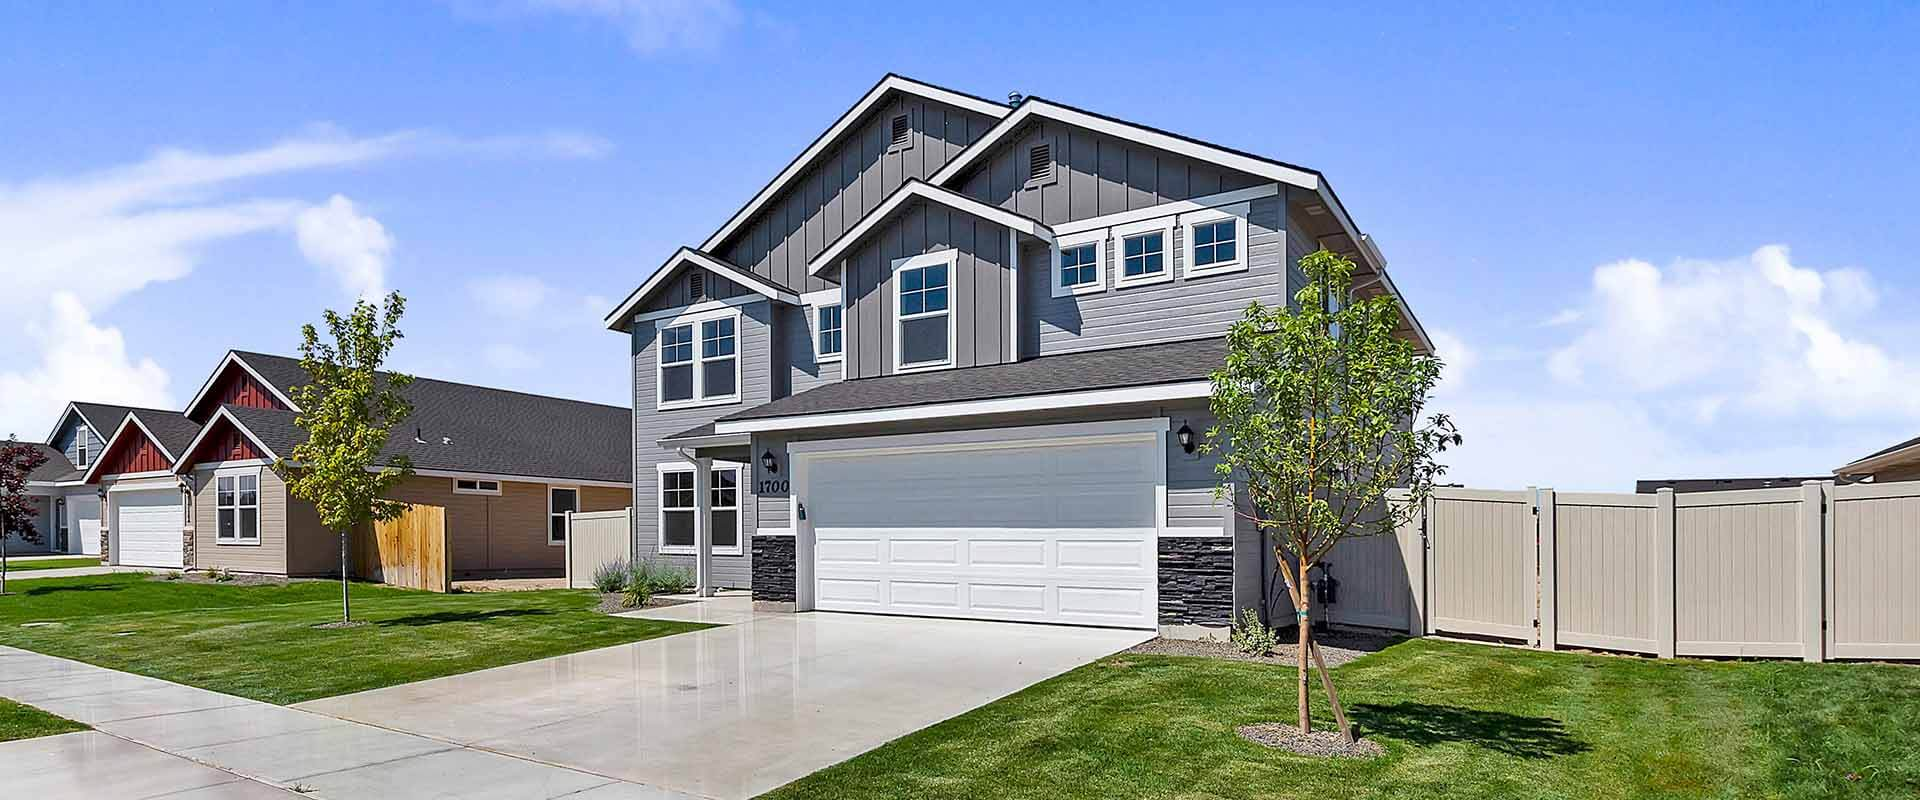 Garnet_Hubble_Homes_New_Homes_Boise_-Front of Home1.jpg